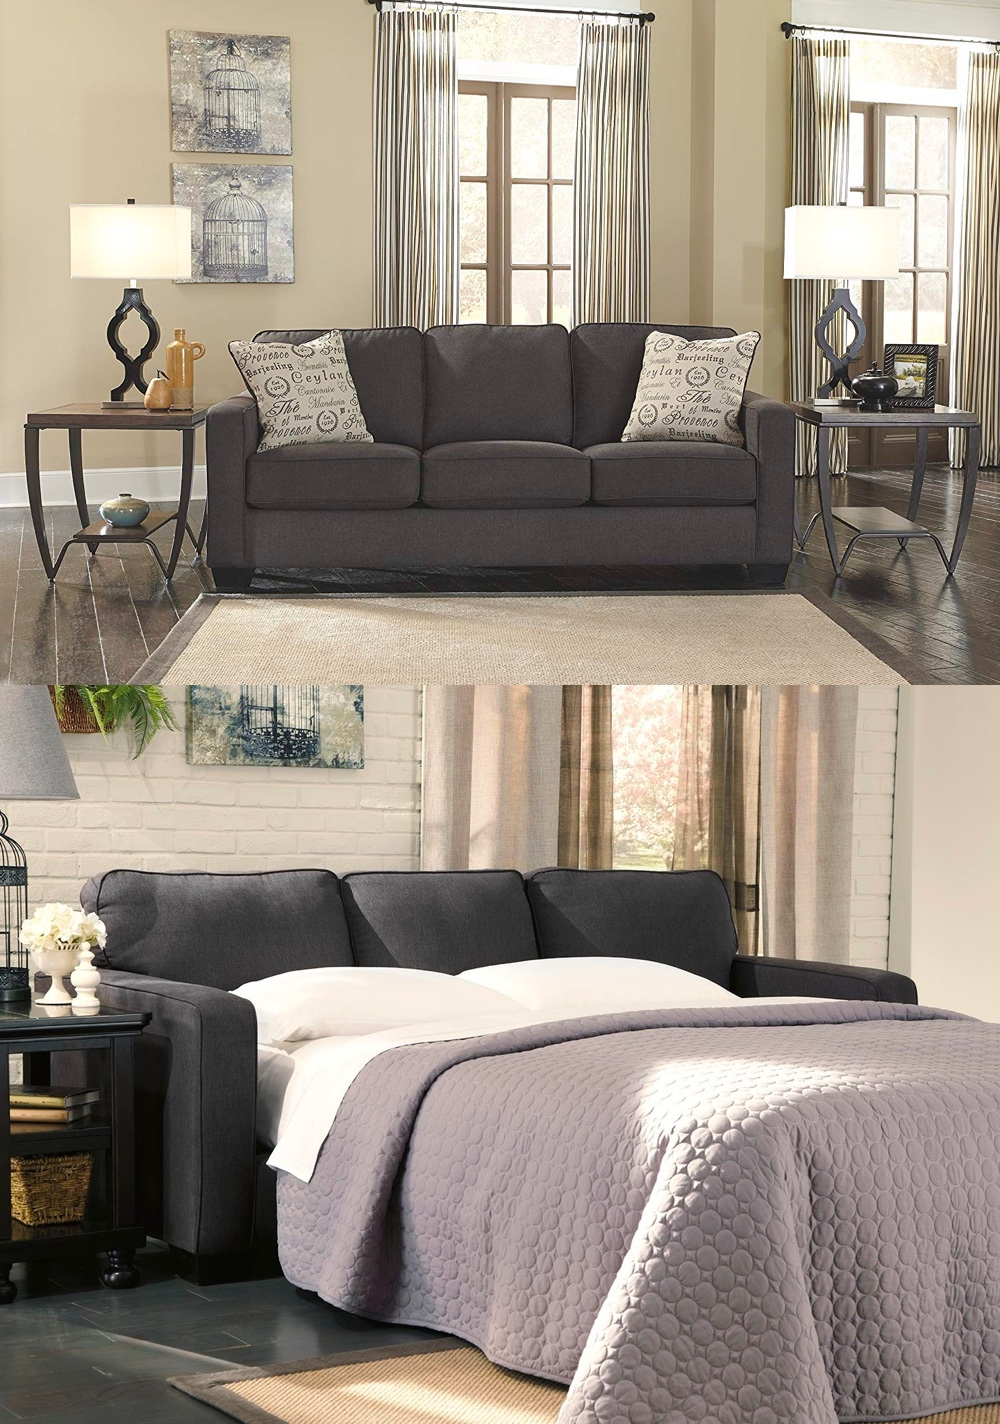 Brilliant 51 Sofa Beds To Create A Chic Multiuse Space That Guests Evergreenethics Interior Chair Design Evergreenethicsorg